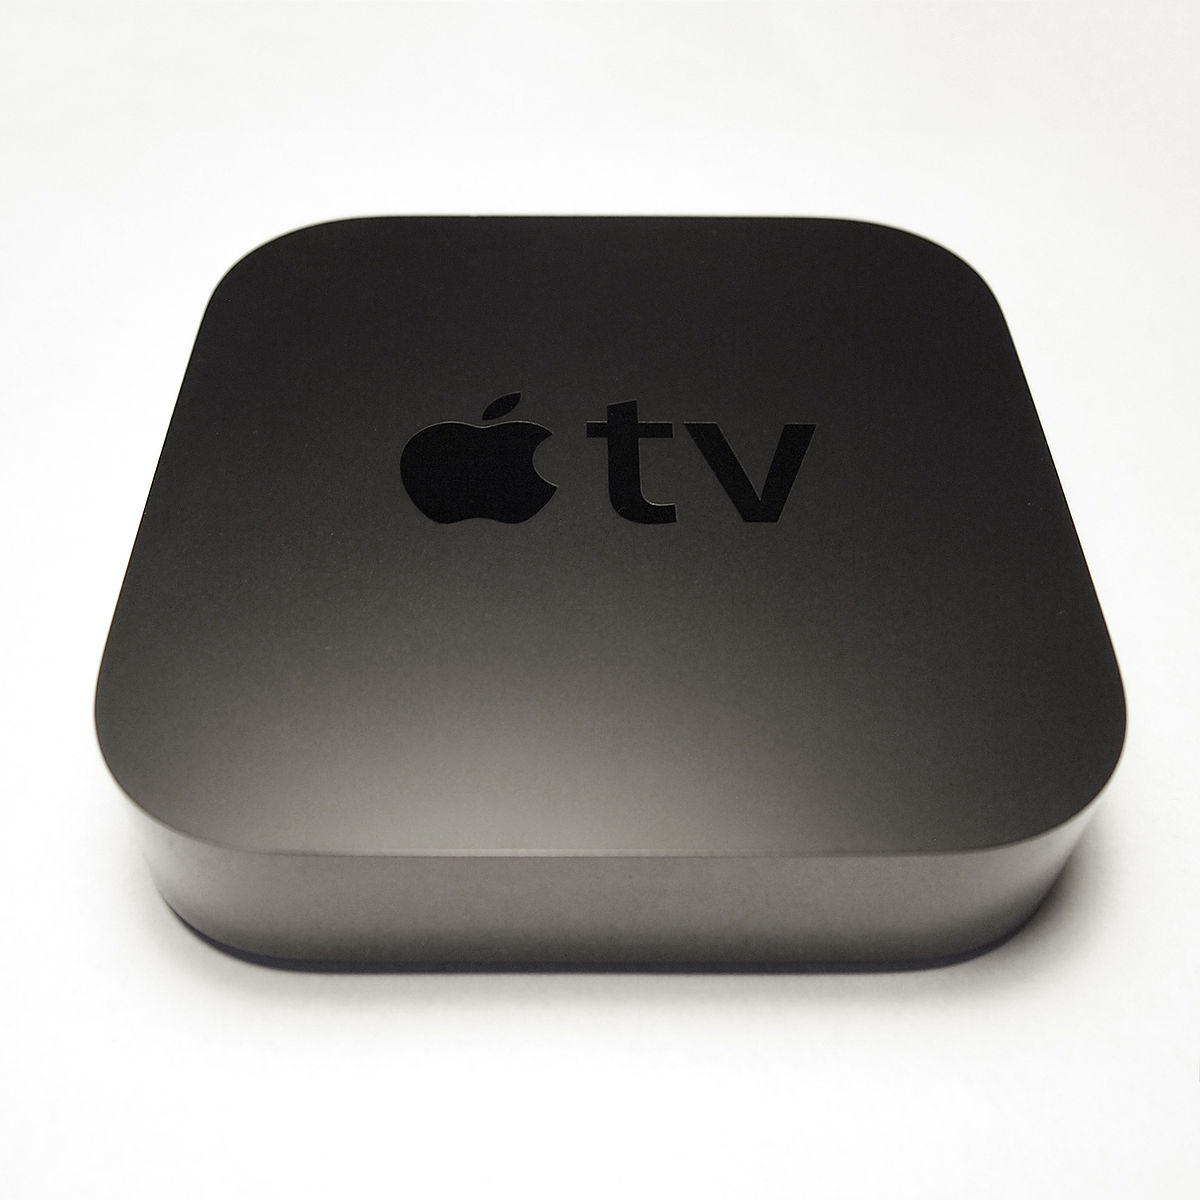 Apple TV - Simple English Wikipedia, the free encyclopedia